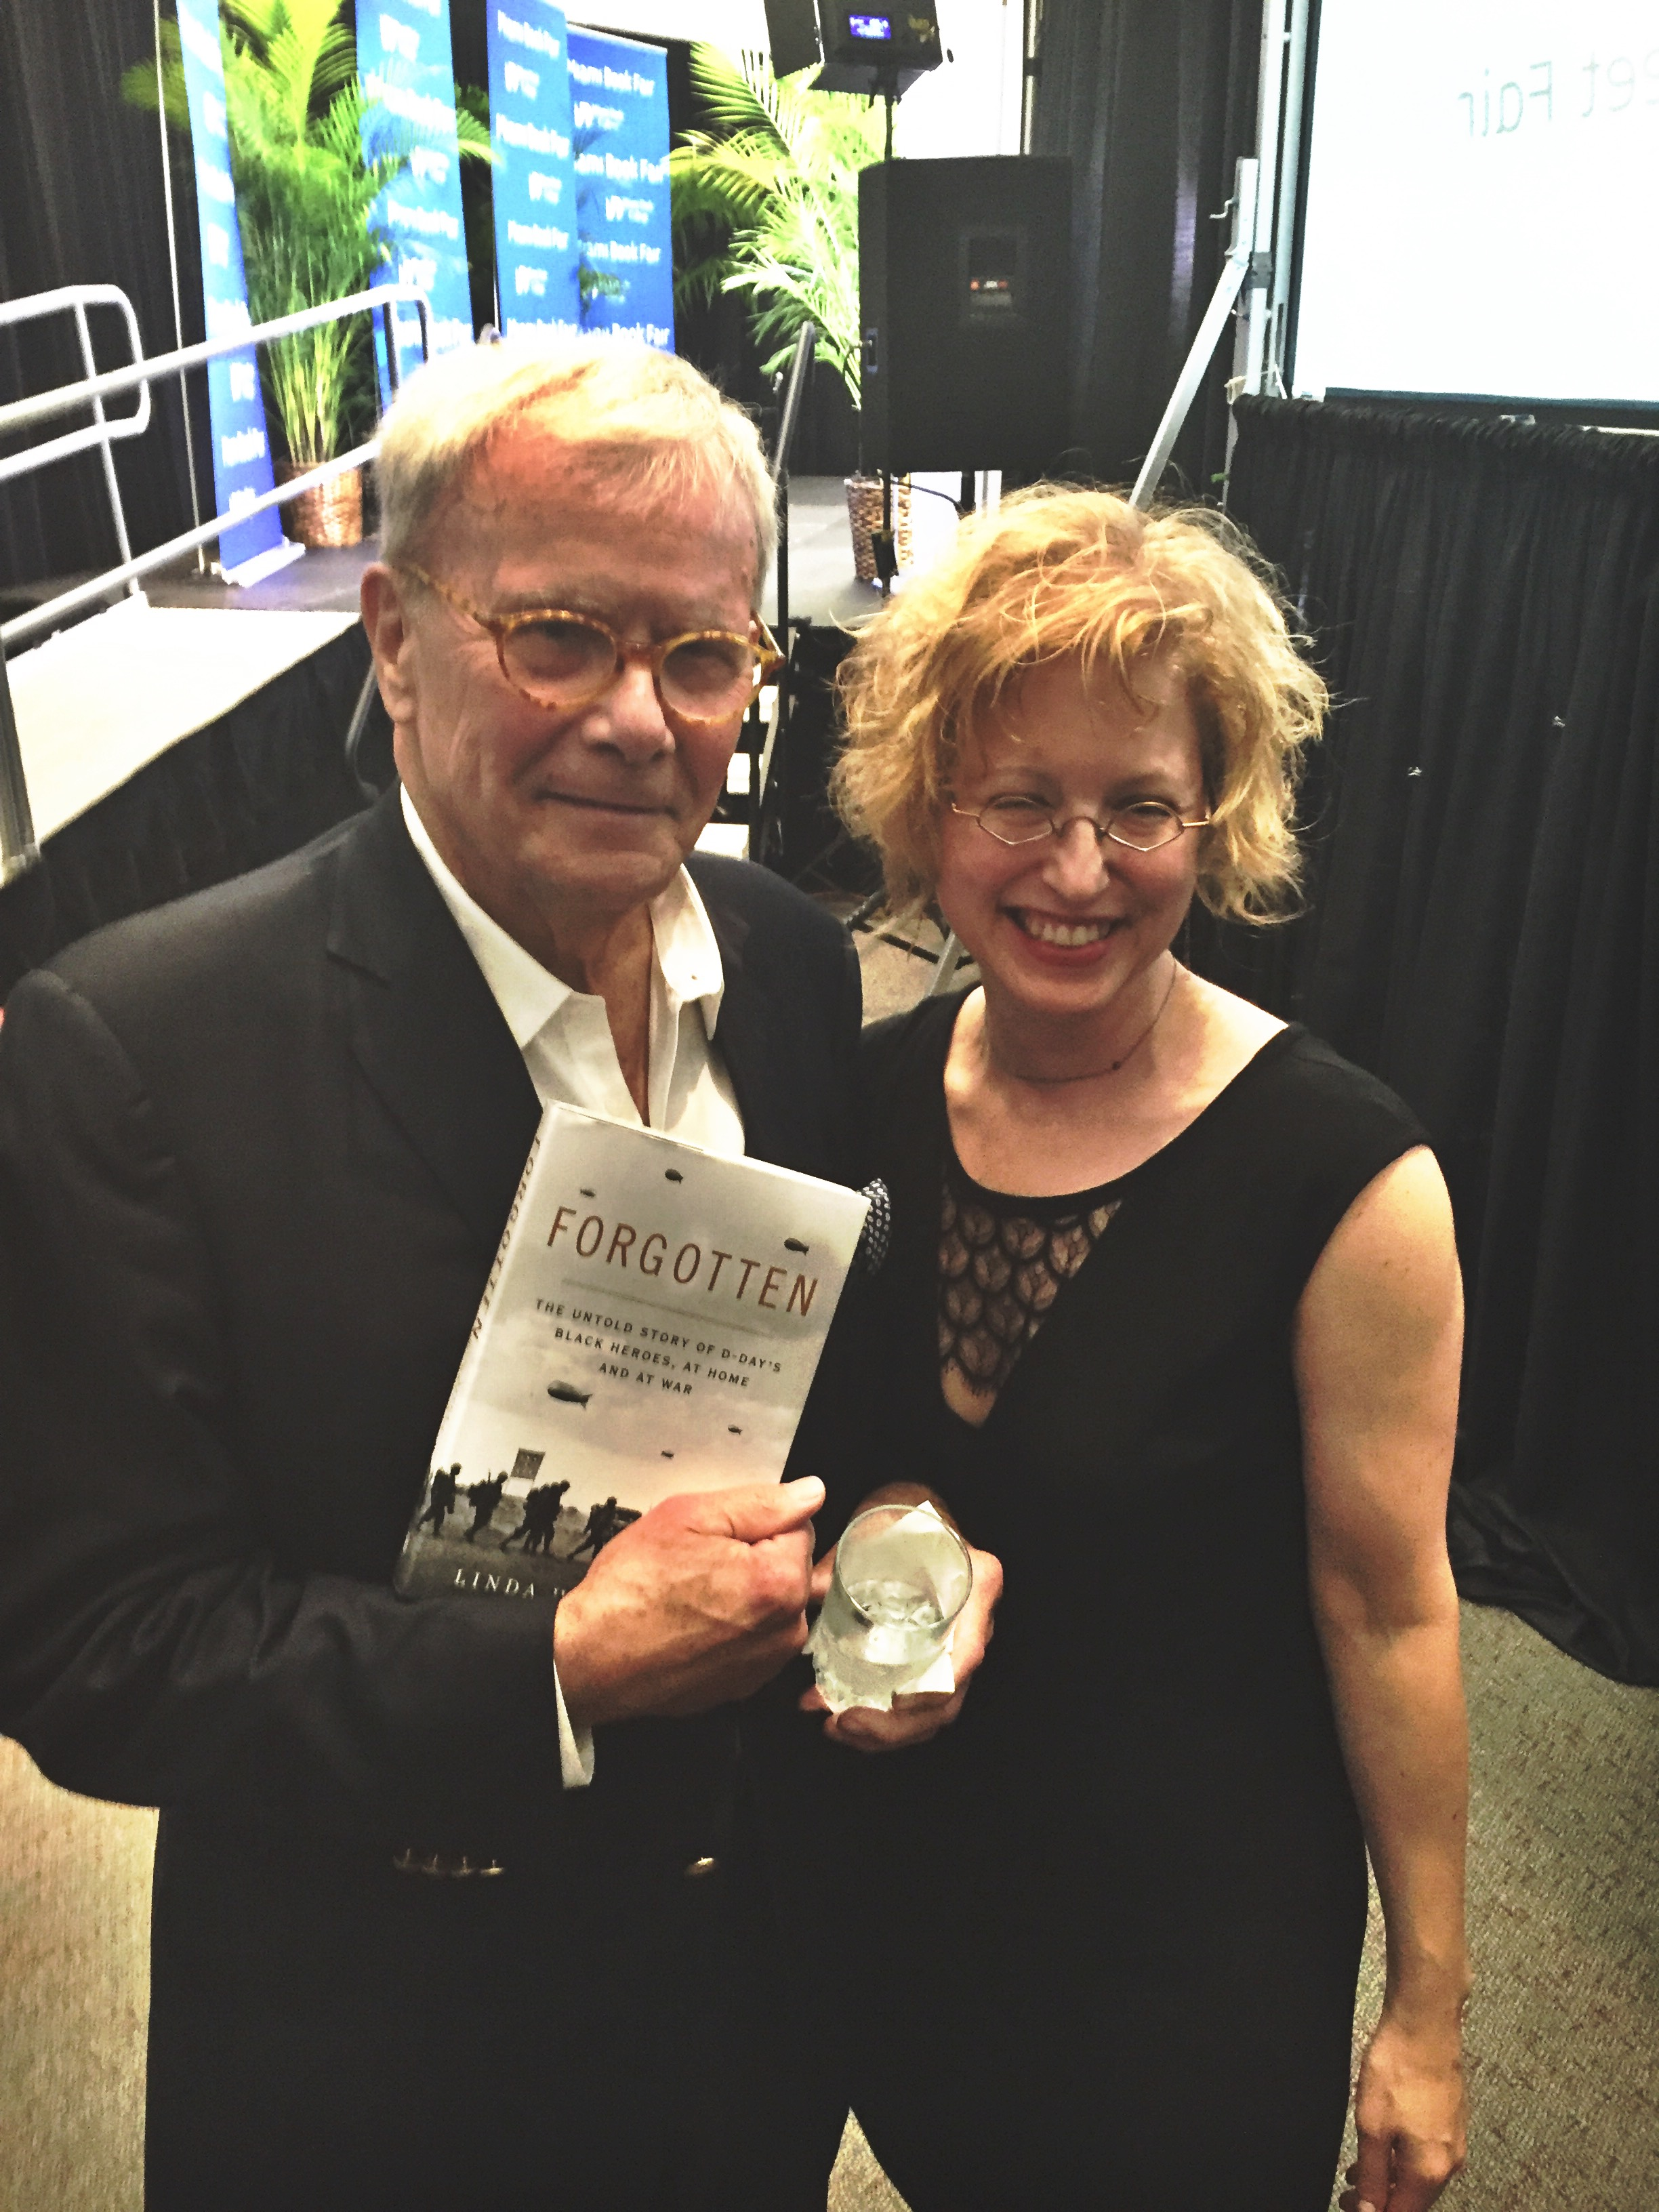 Tom Brokaw with me and a copy of FORGOTTEN at the Miami International Book Fair